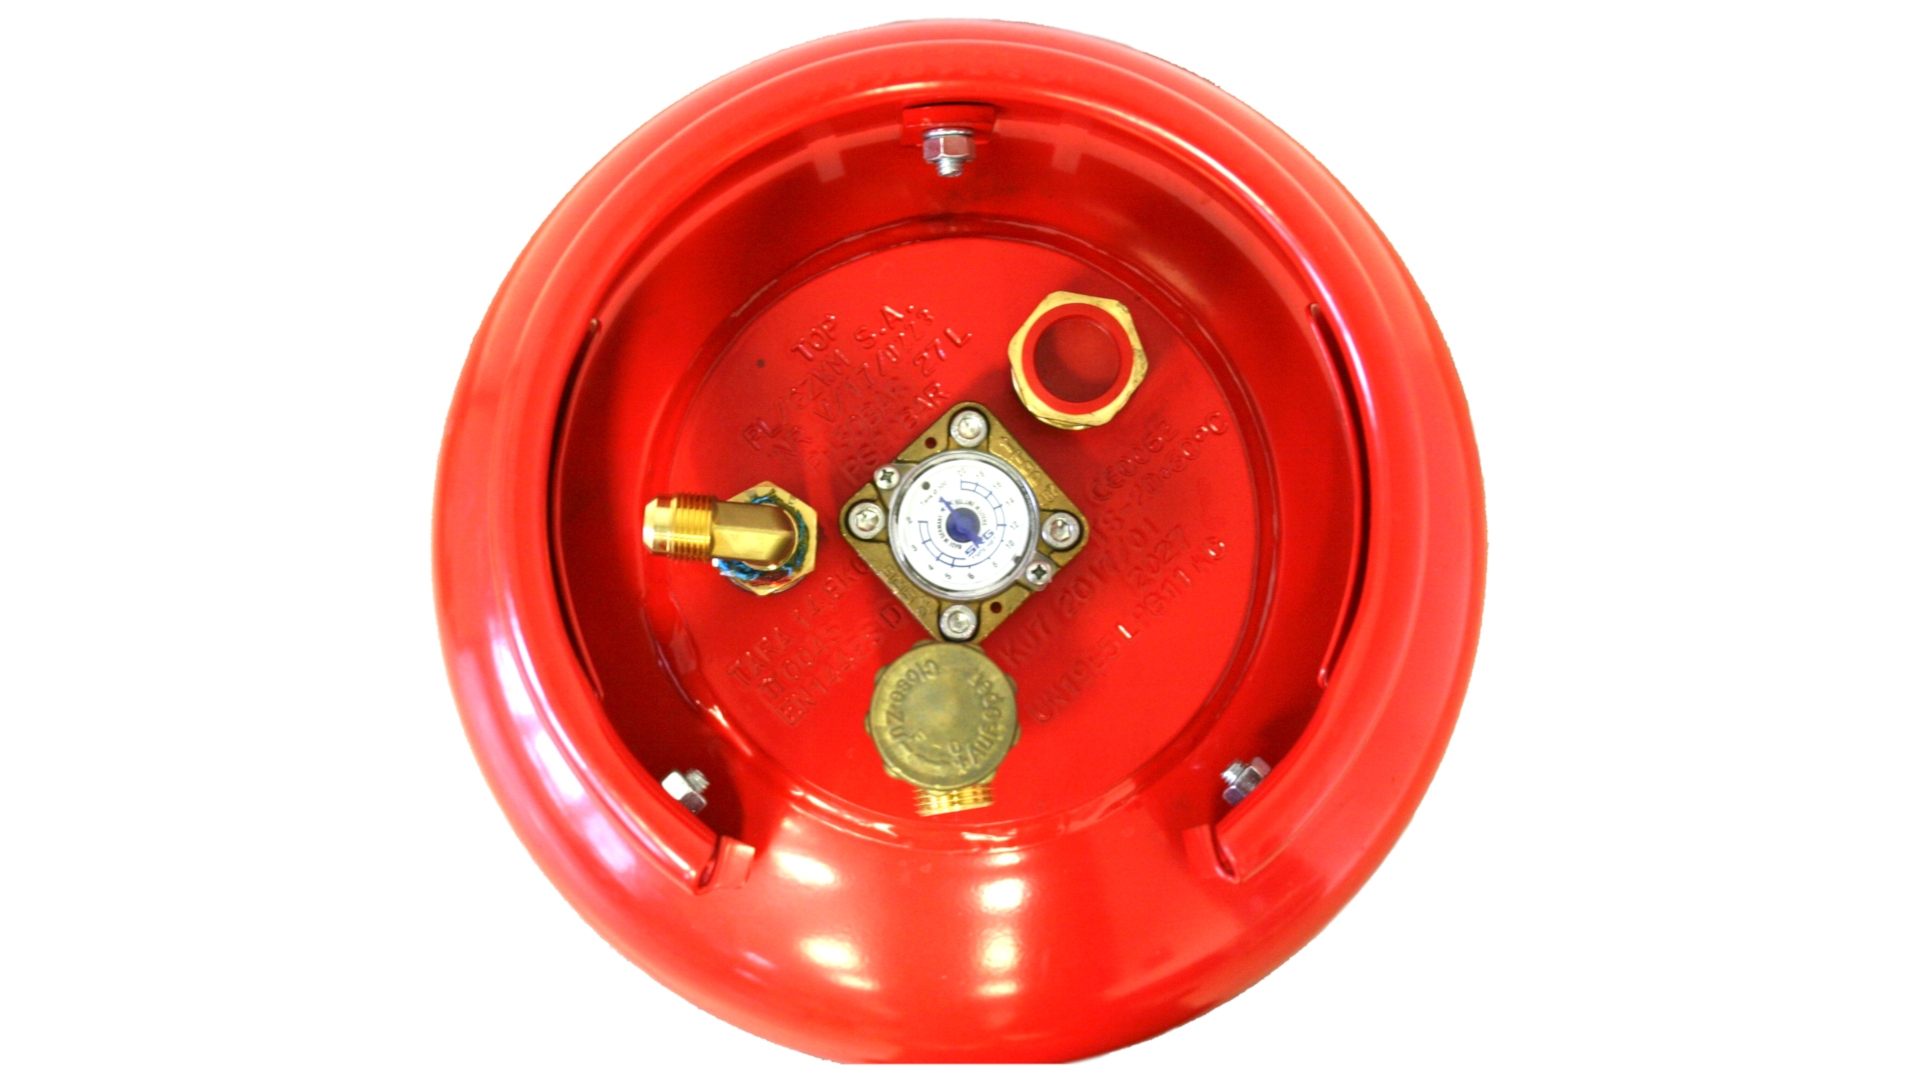 GZWM gas cylinder 36 litres with 3-point valve